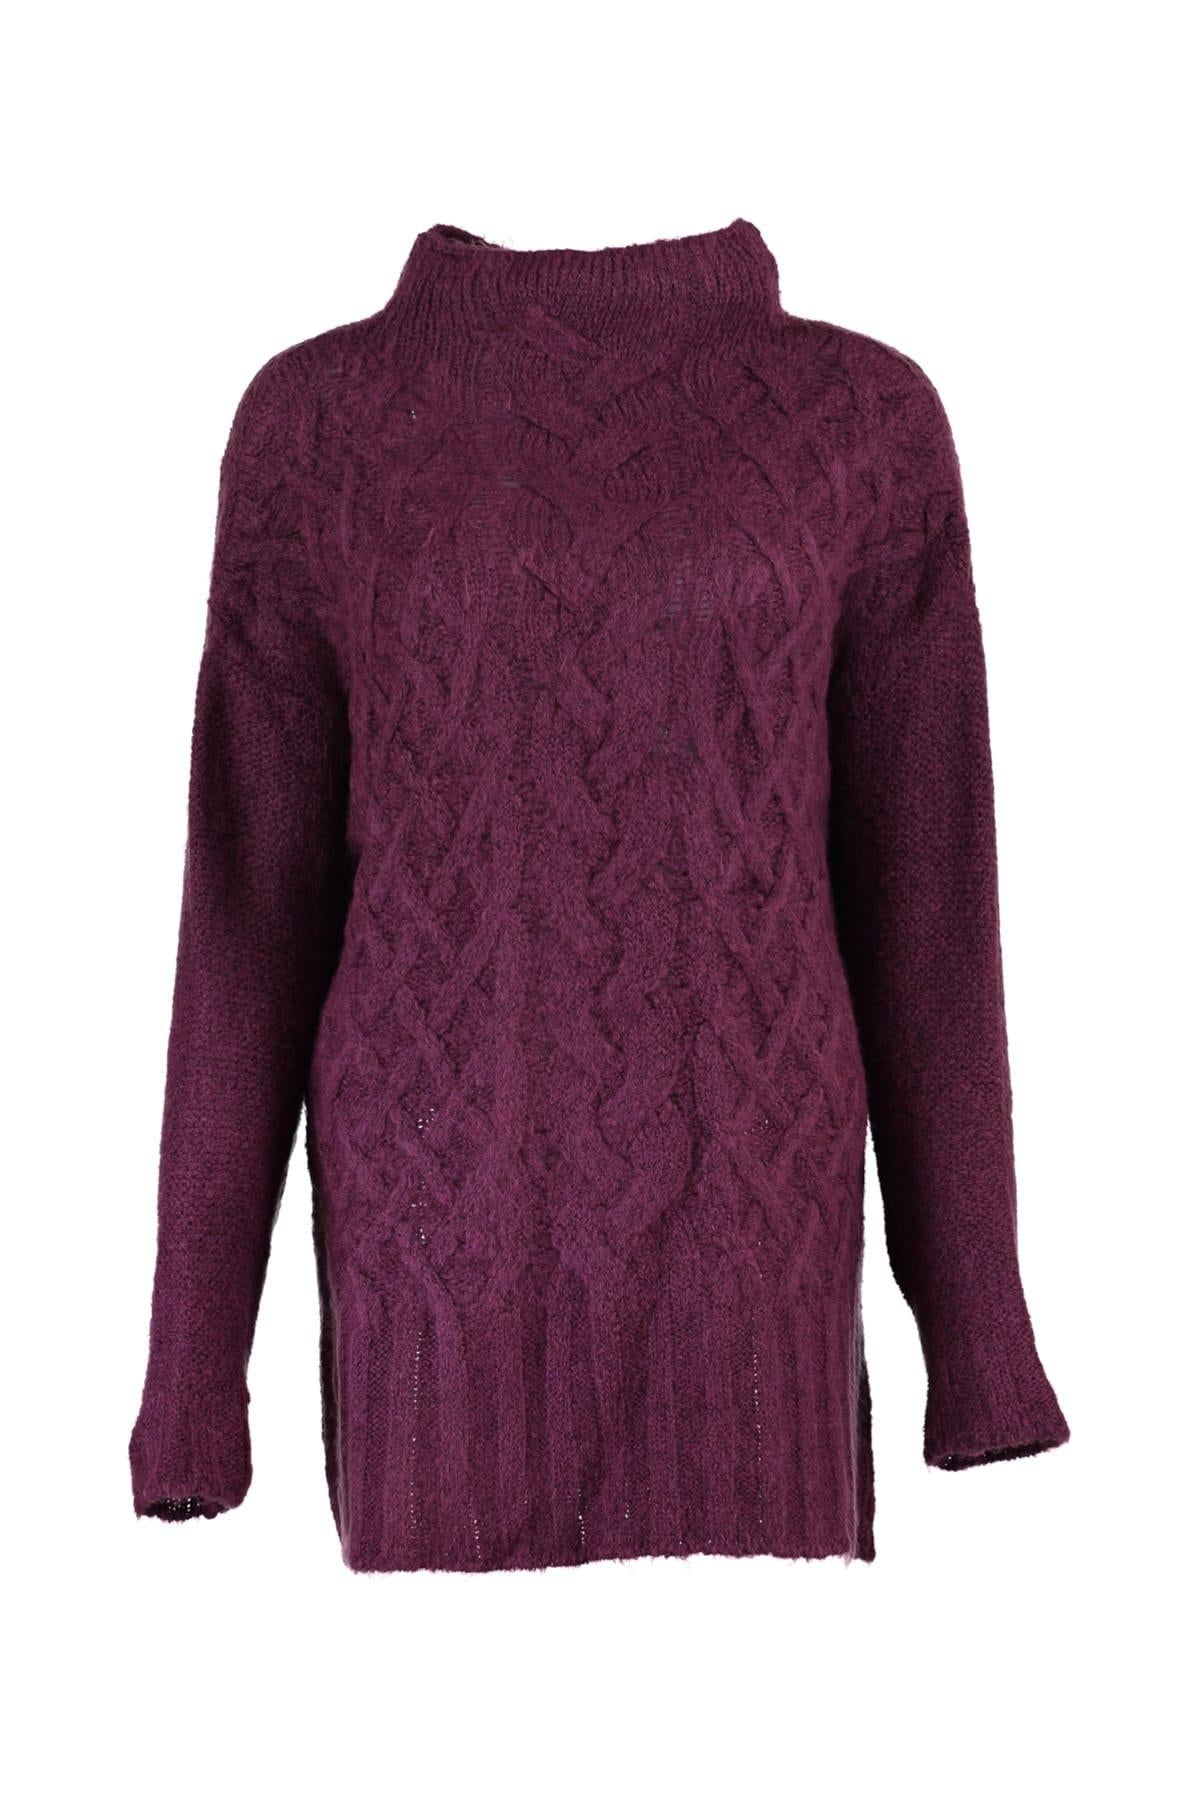 WOMEN Mürdüm Mesh Detaylı Knitwear Sweater TWOAW20NV0037